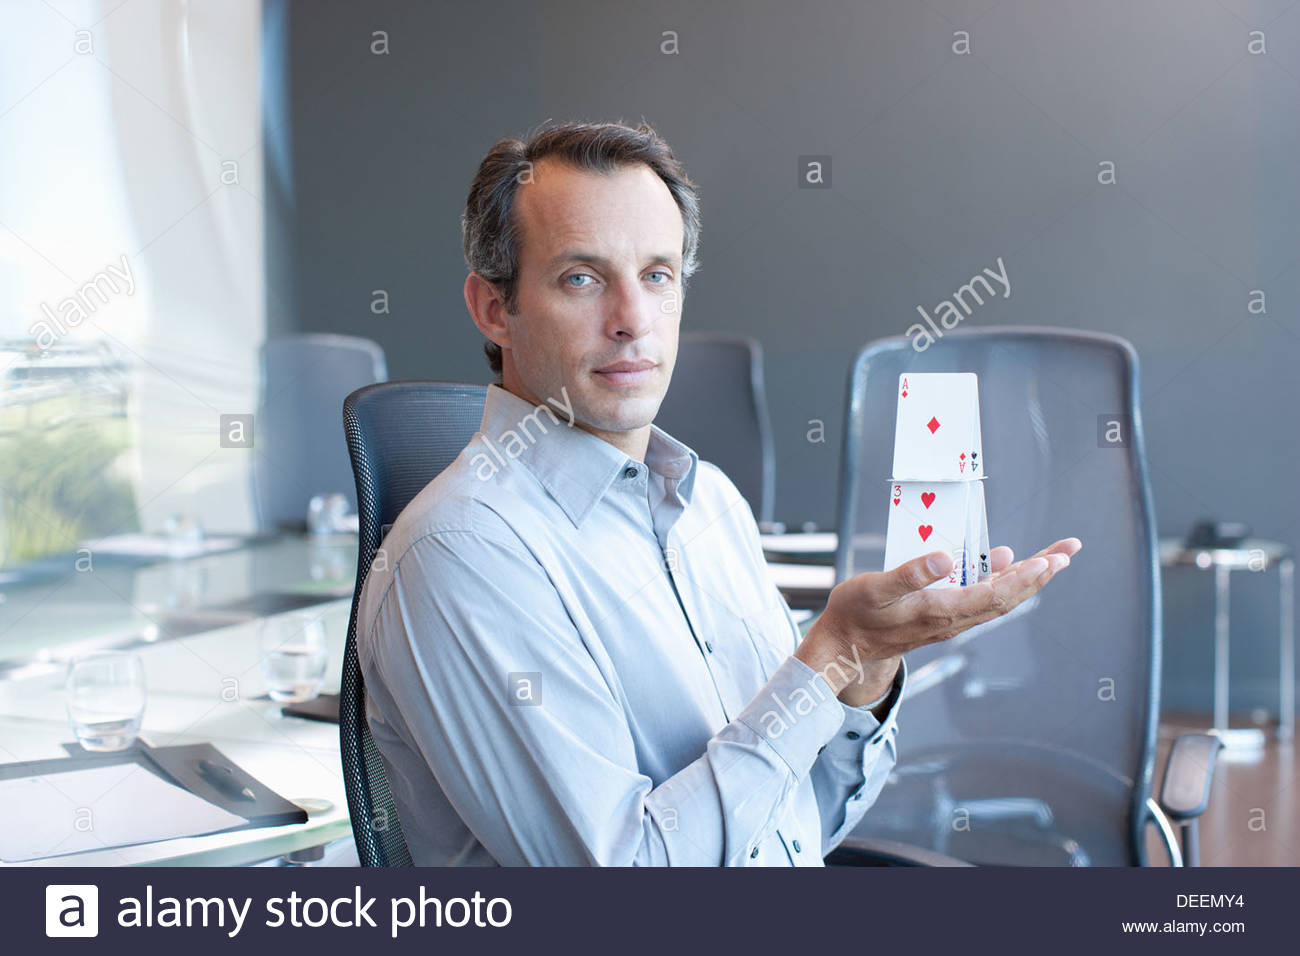 Businessman holding house of cards in conference room - Stock Image